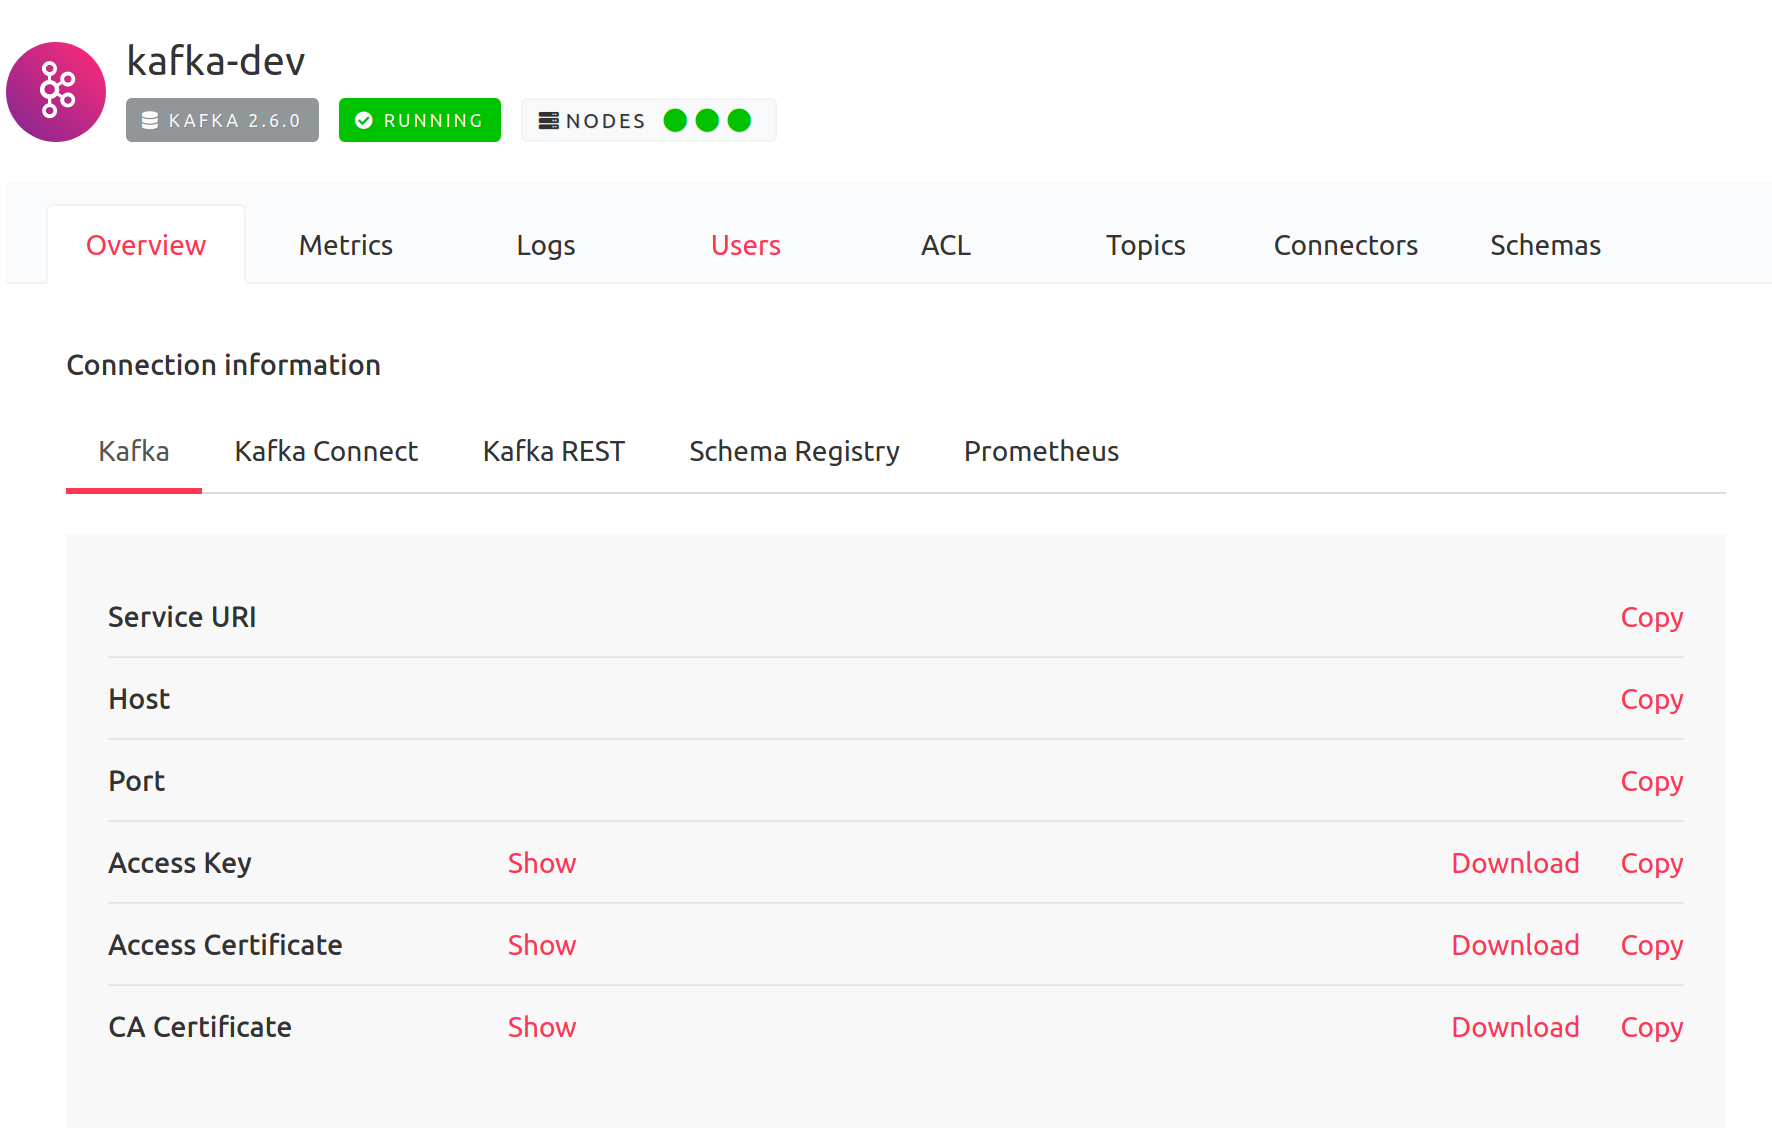 Screenshot from Aiven portal, Kafka Overview tab with connection information, last one is CA Certificate